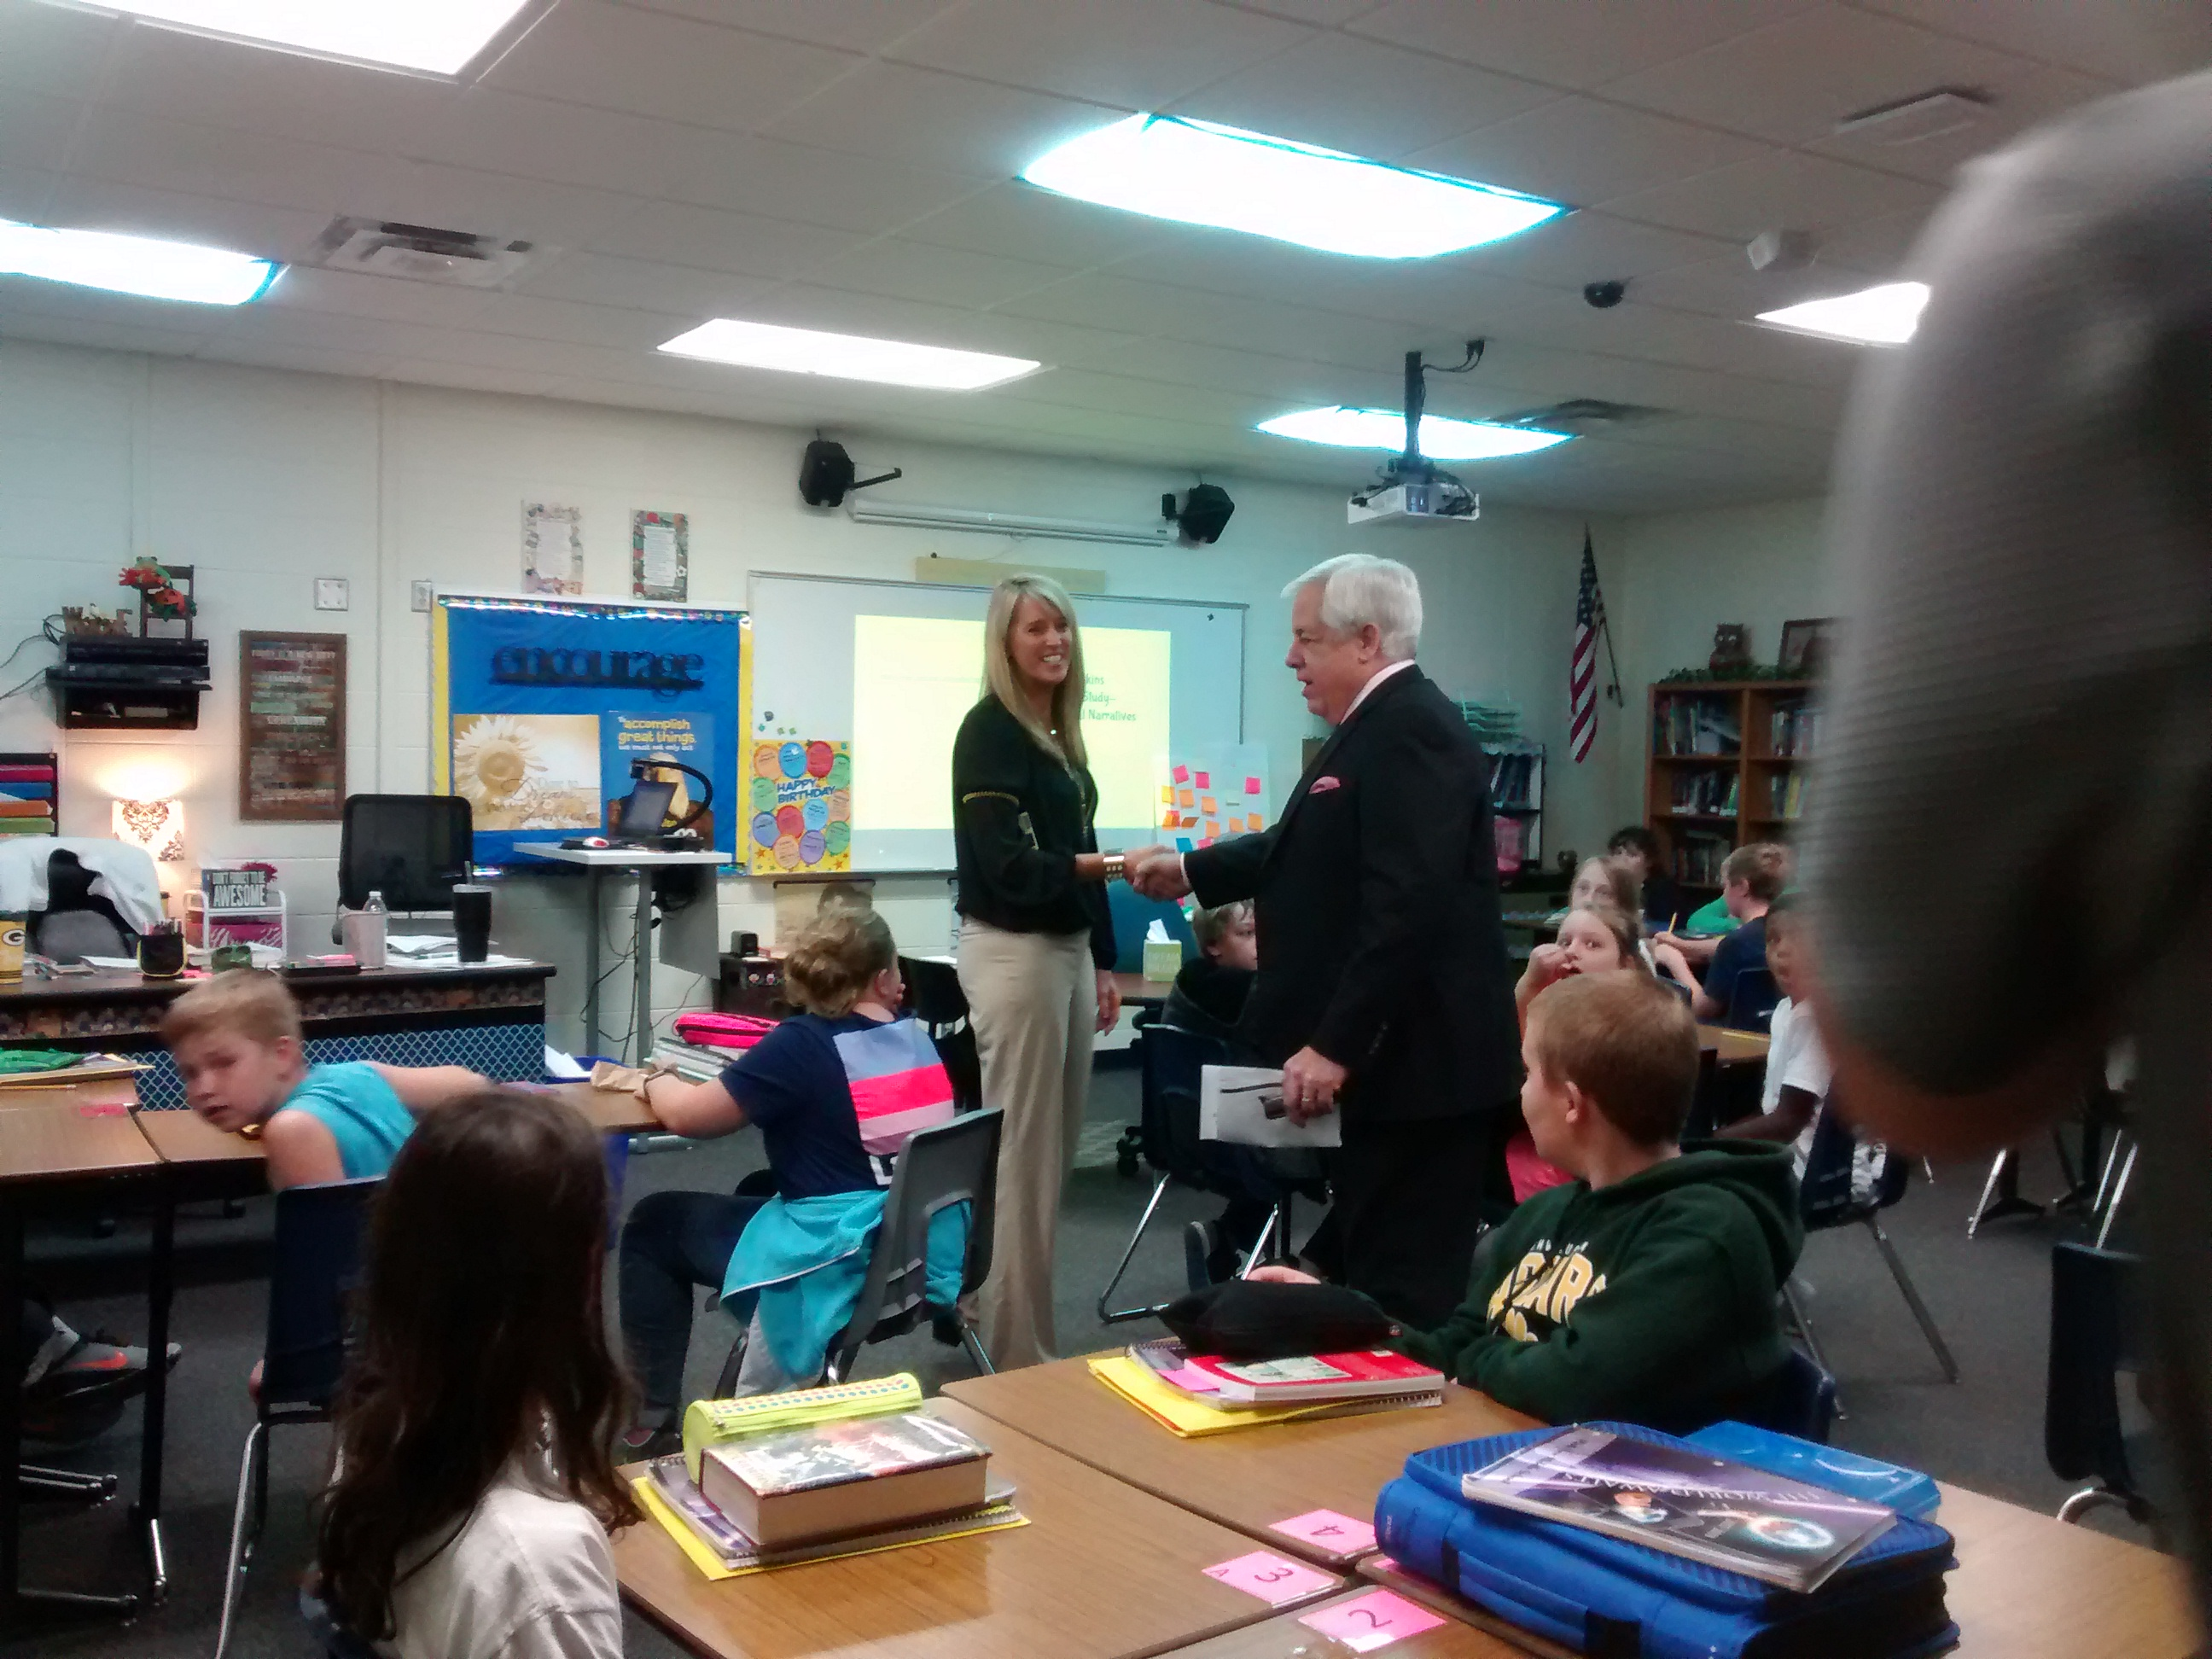 FOX 11's Tom Milbourn visits Parkview Middle School for the 2017 Golden Apple Awards kickoff, September 18, 2017. (Photo courtesy of Greater Green Bay Chamber)